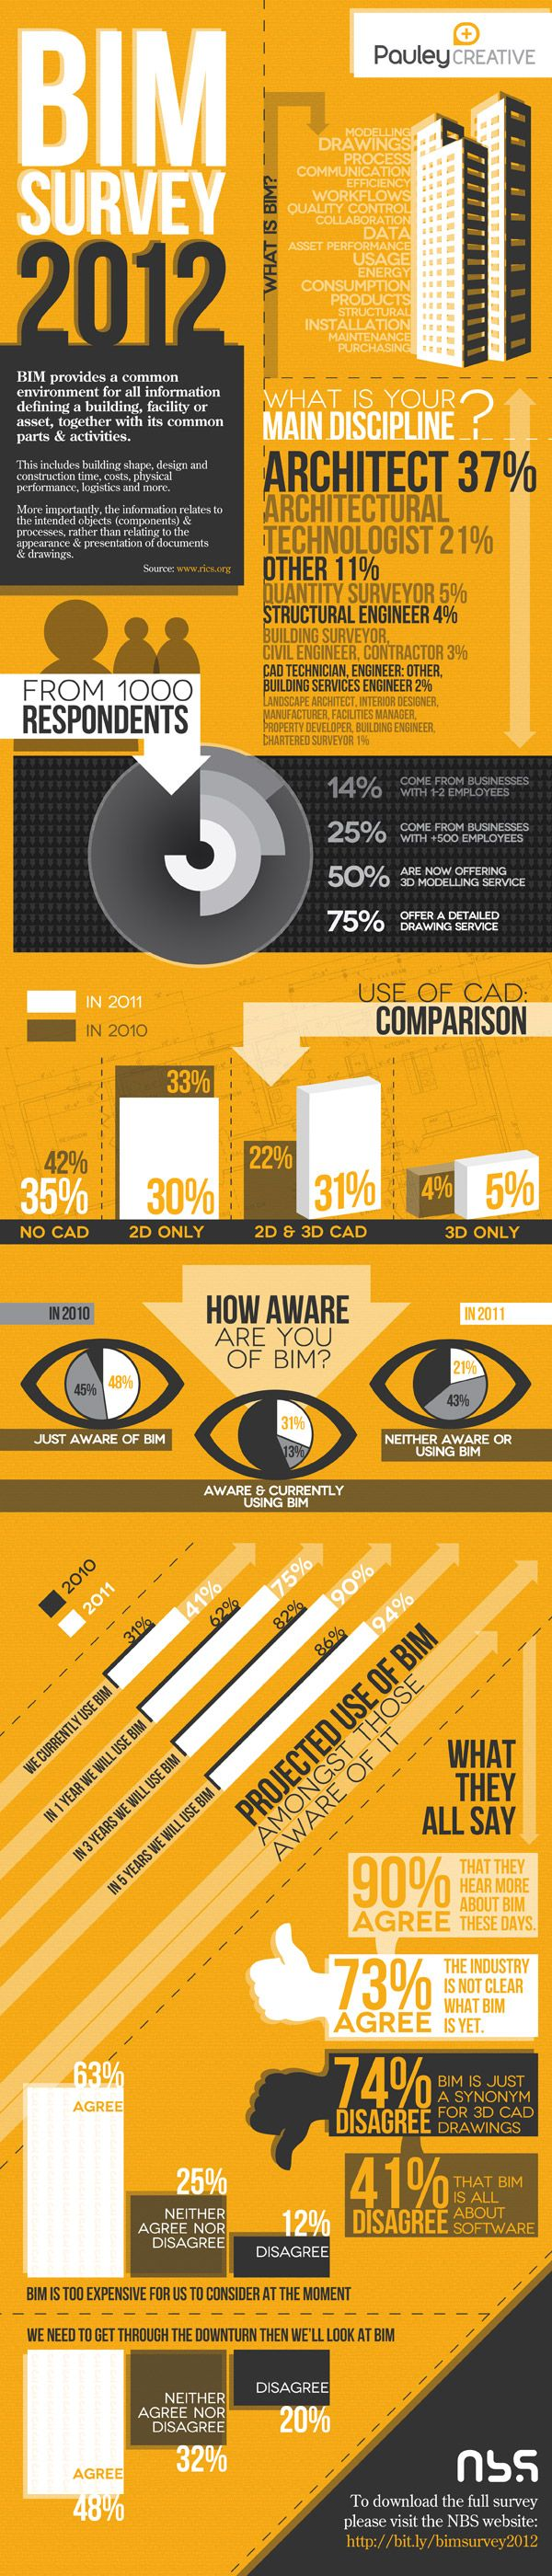 Super intreressant! BIM survey 2012